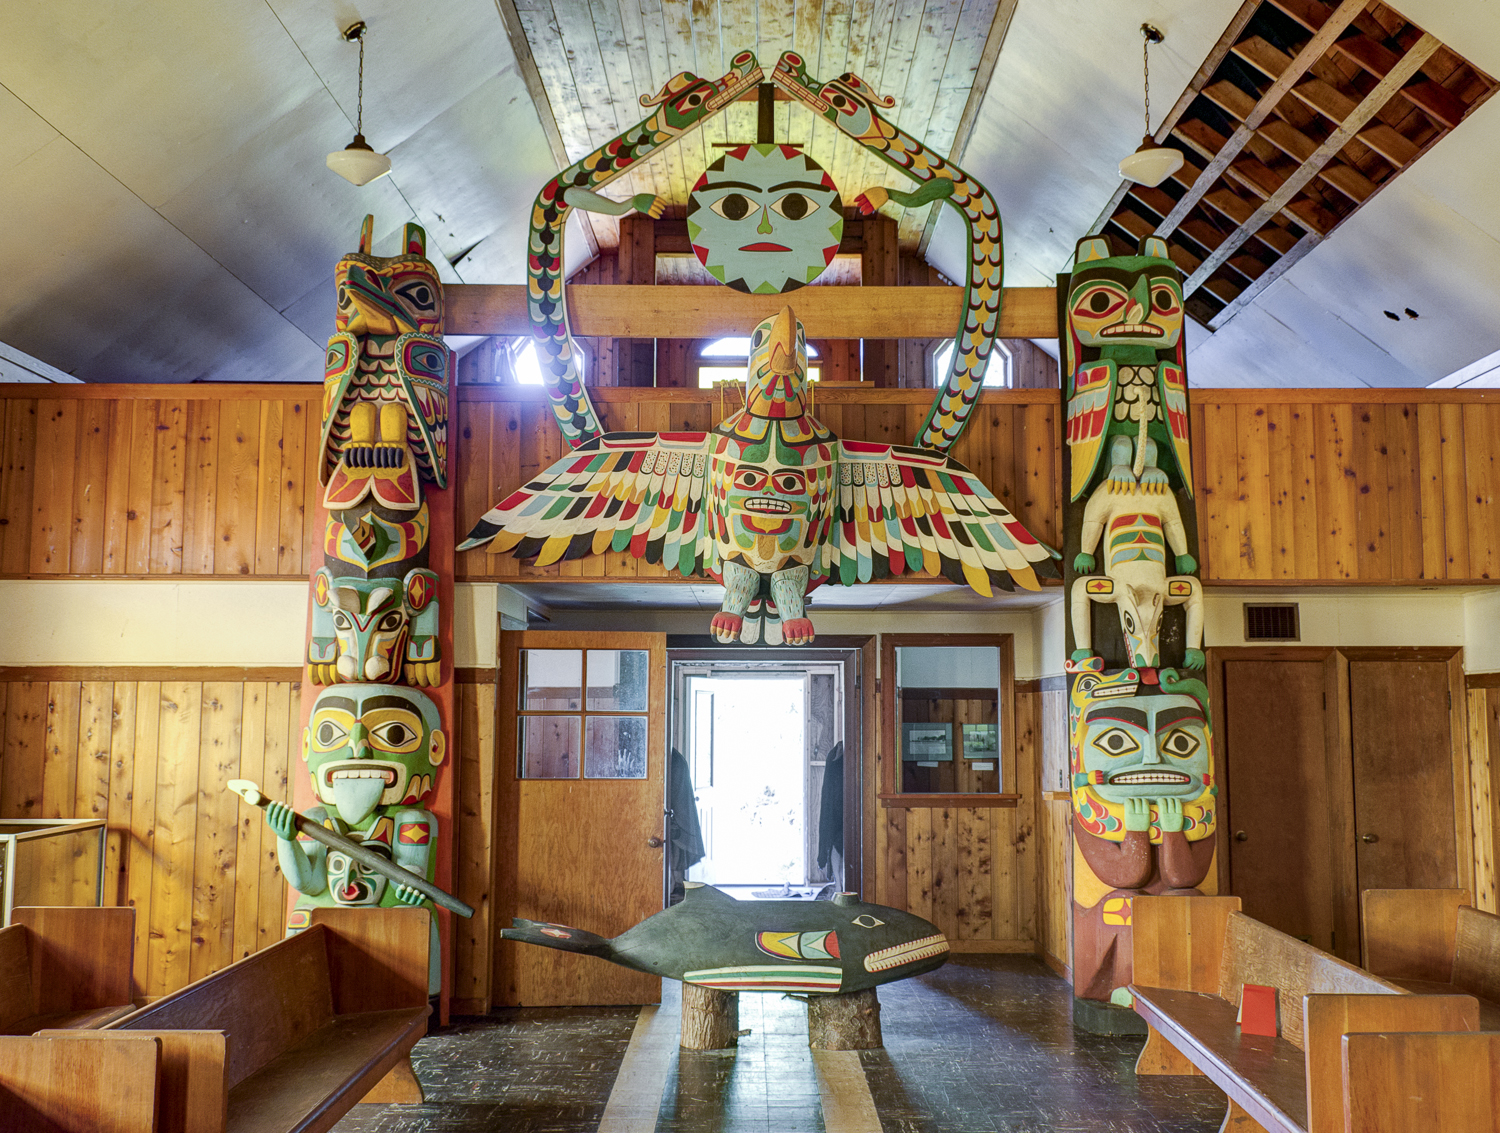 The totems guarding the church